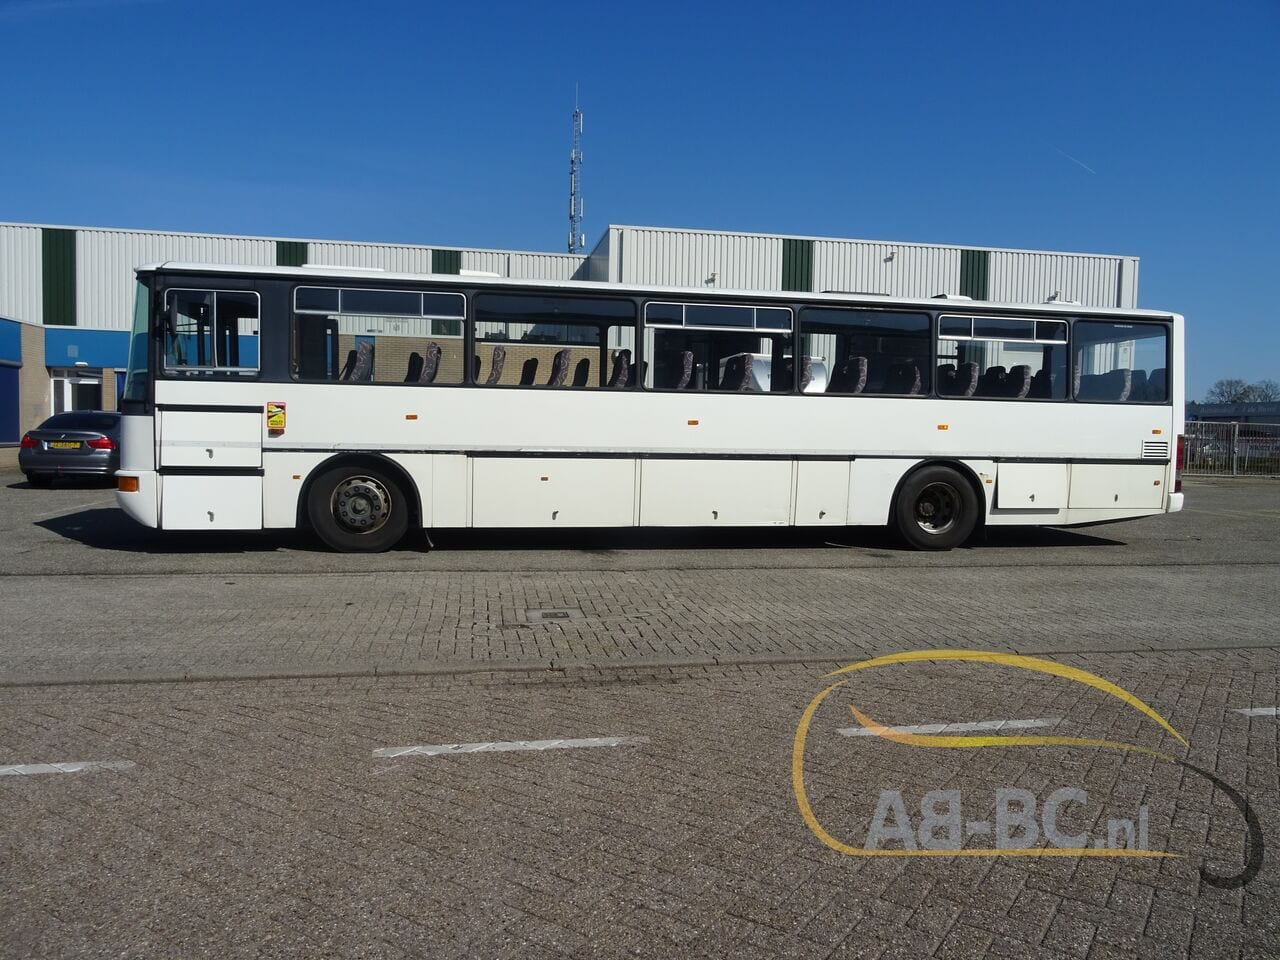 interurban-busIVECO-Irisbus-Recreo-59-Seats---1619430670644544015_big_59bf8bb5acf3008c382b1186defffb0d--21042612454255740900